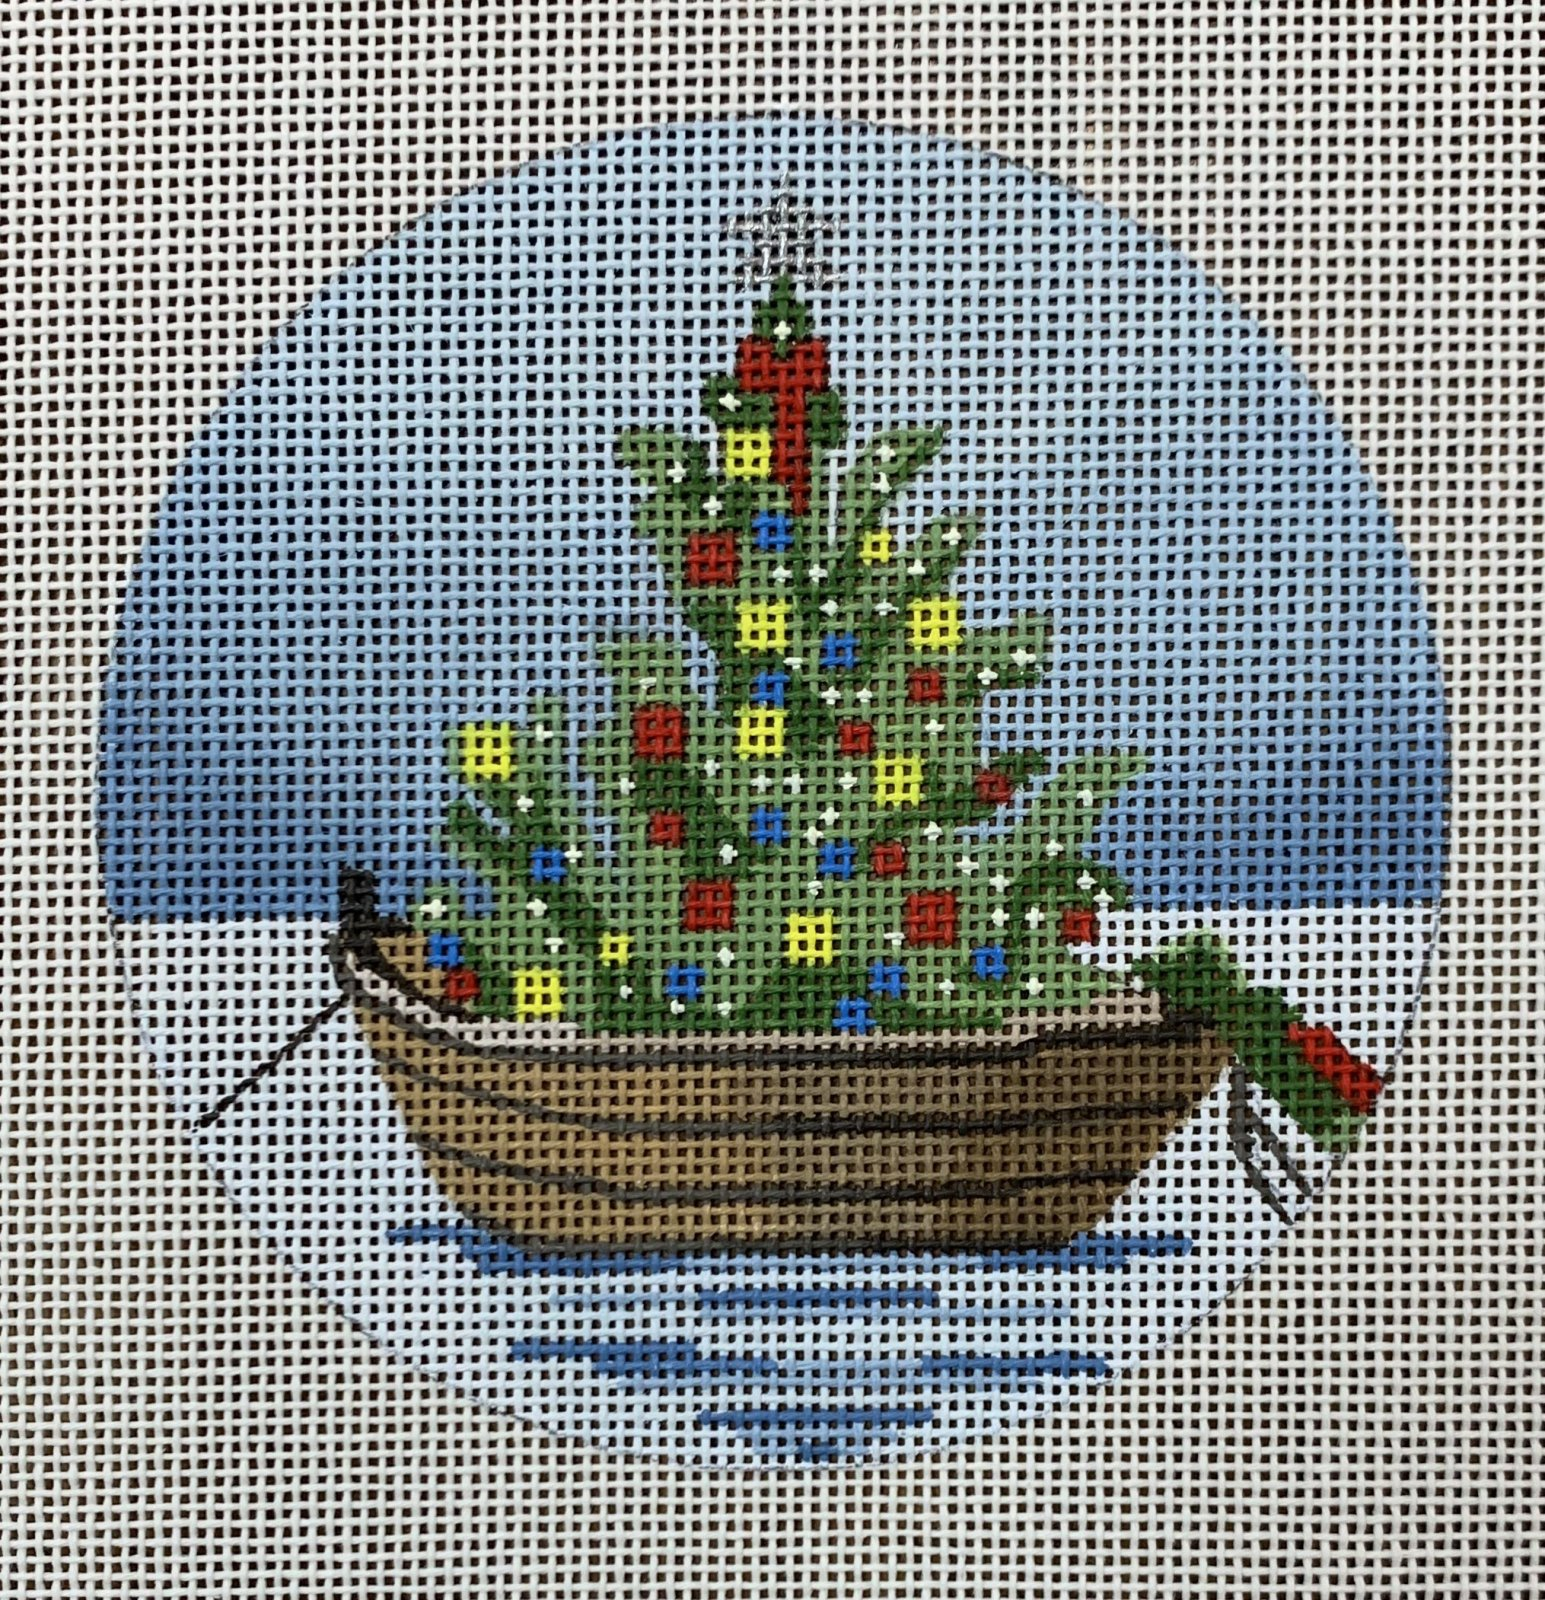 Nantucket Boat with Wreath